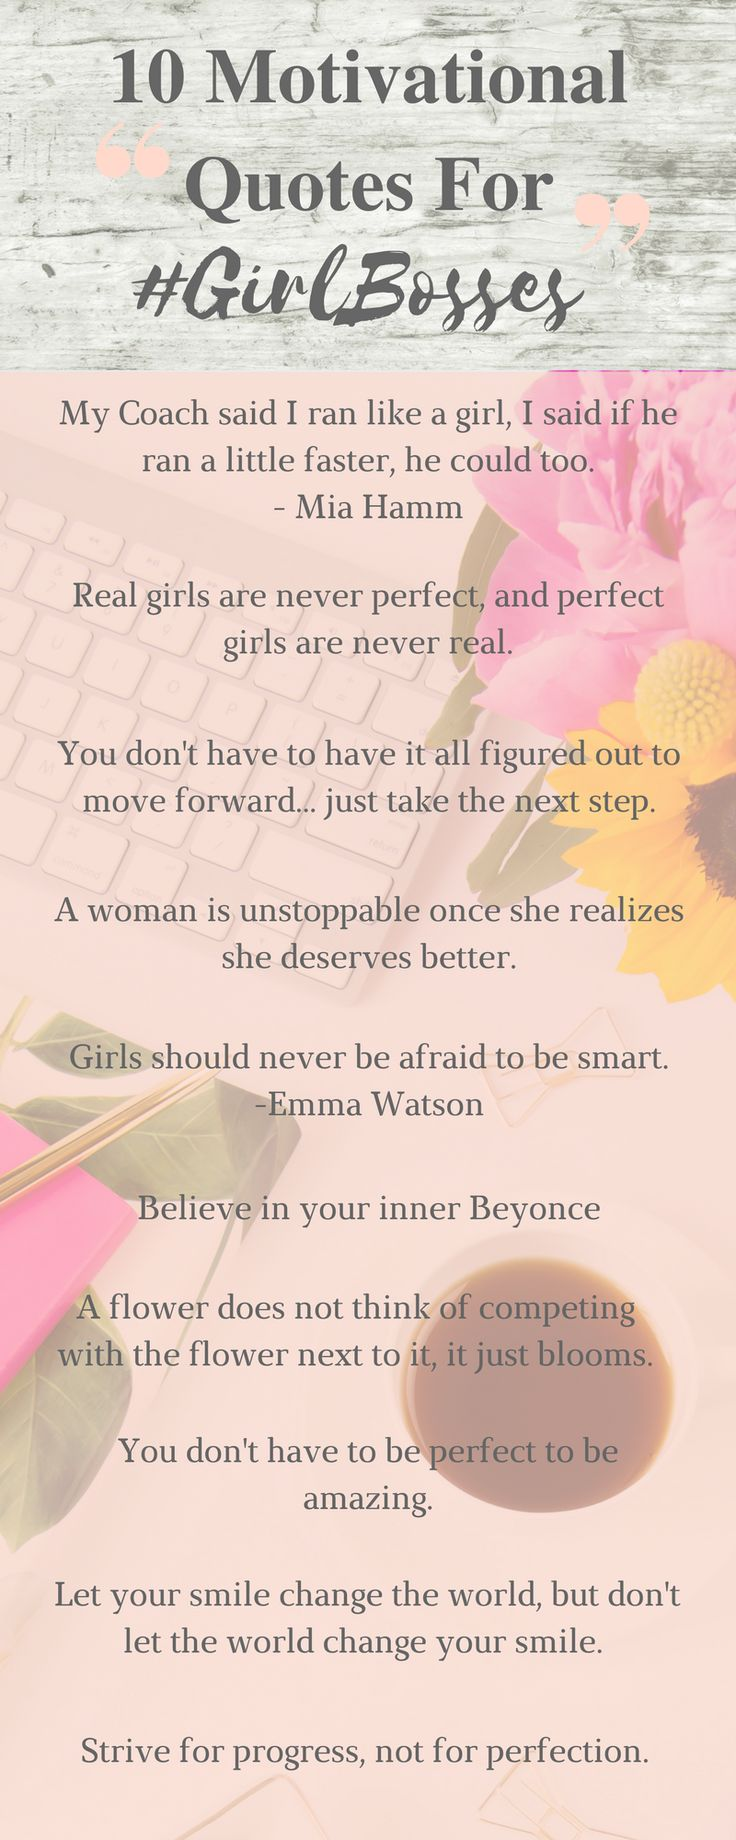 Motivational Quotes For Teenagers: 27 Best Prints & Wallpapers Images On Pinterest